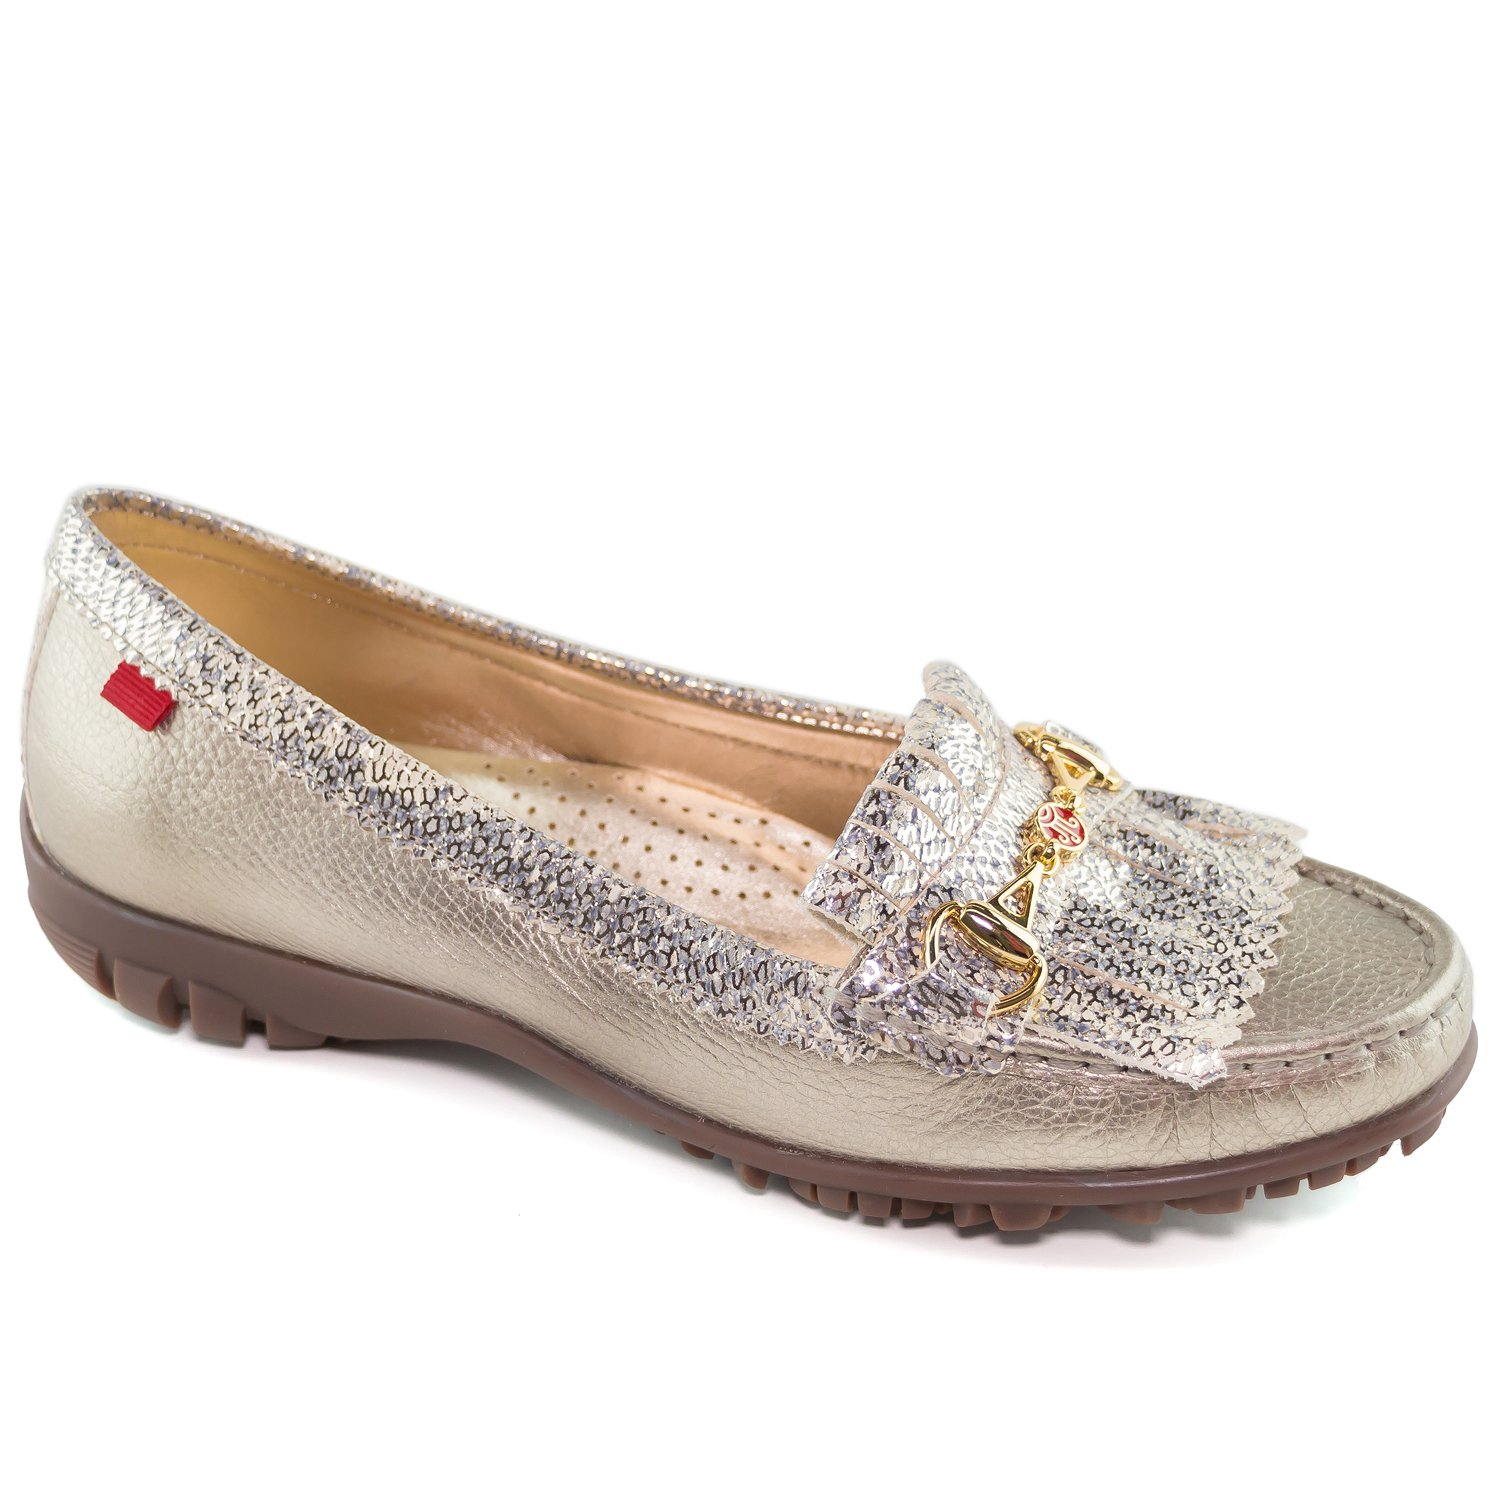 Marc Joseph New York Women's Fashion Shoes Lexington Golf Champagne Metallic Snake With Patent Kilt Moccassin Size 7